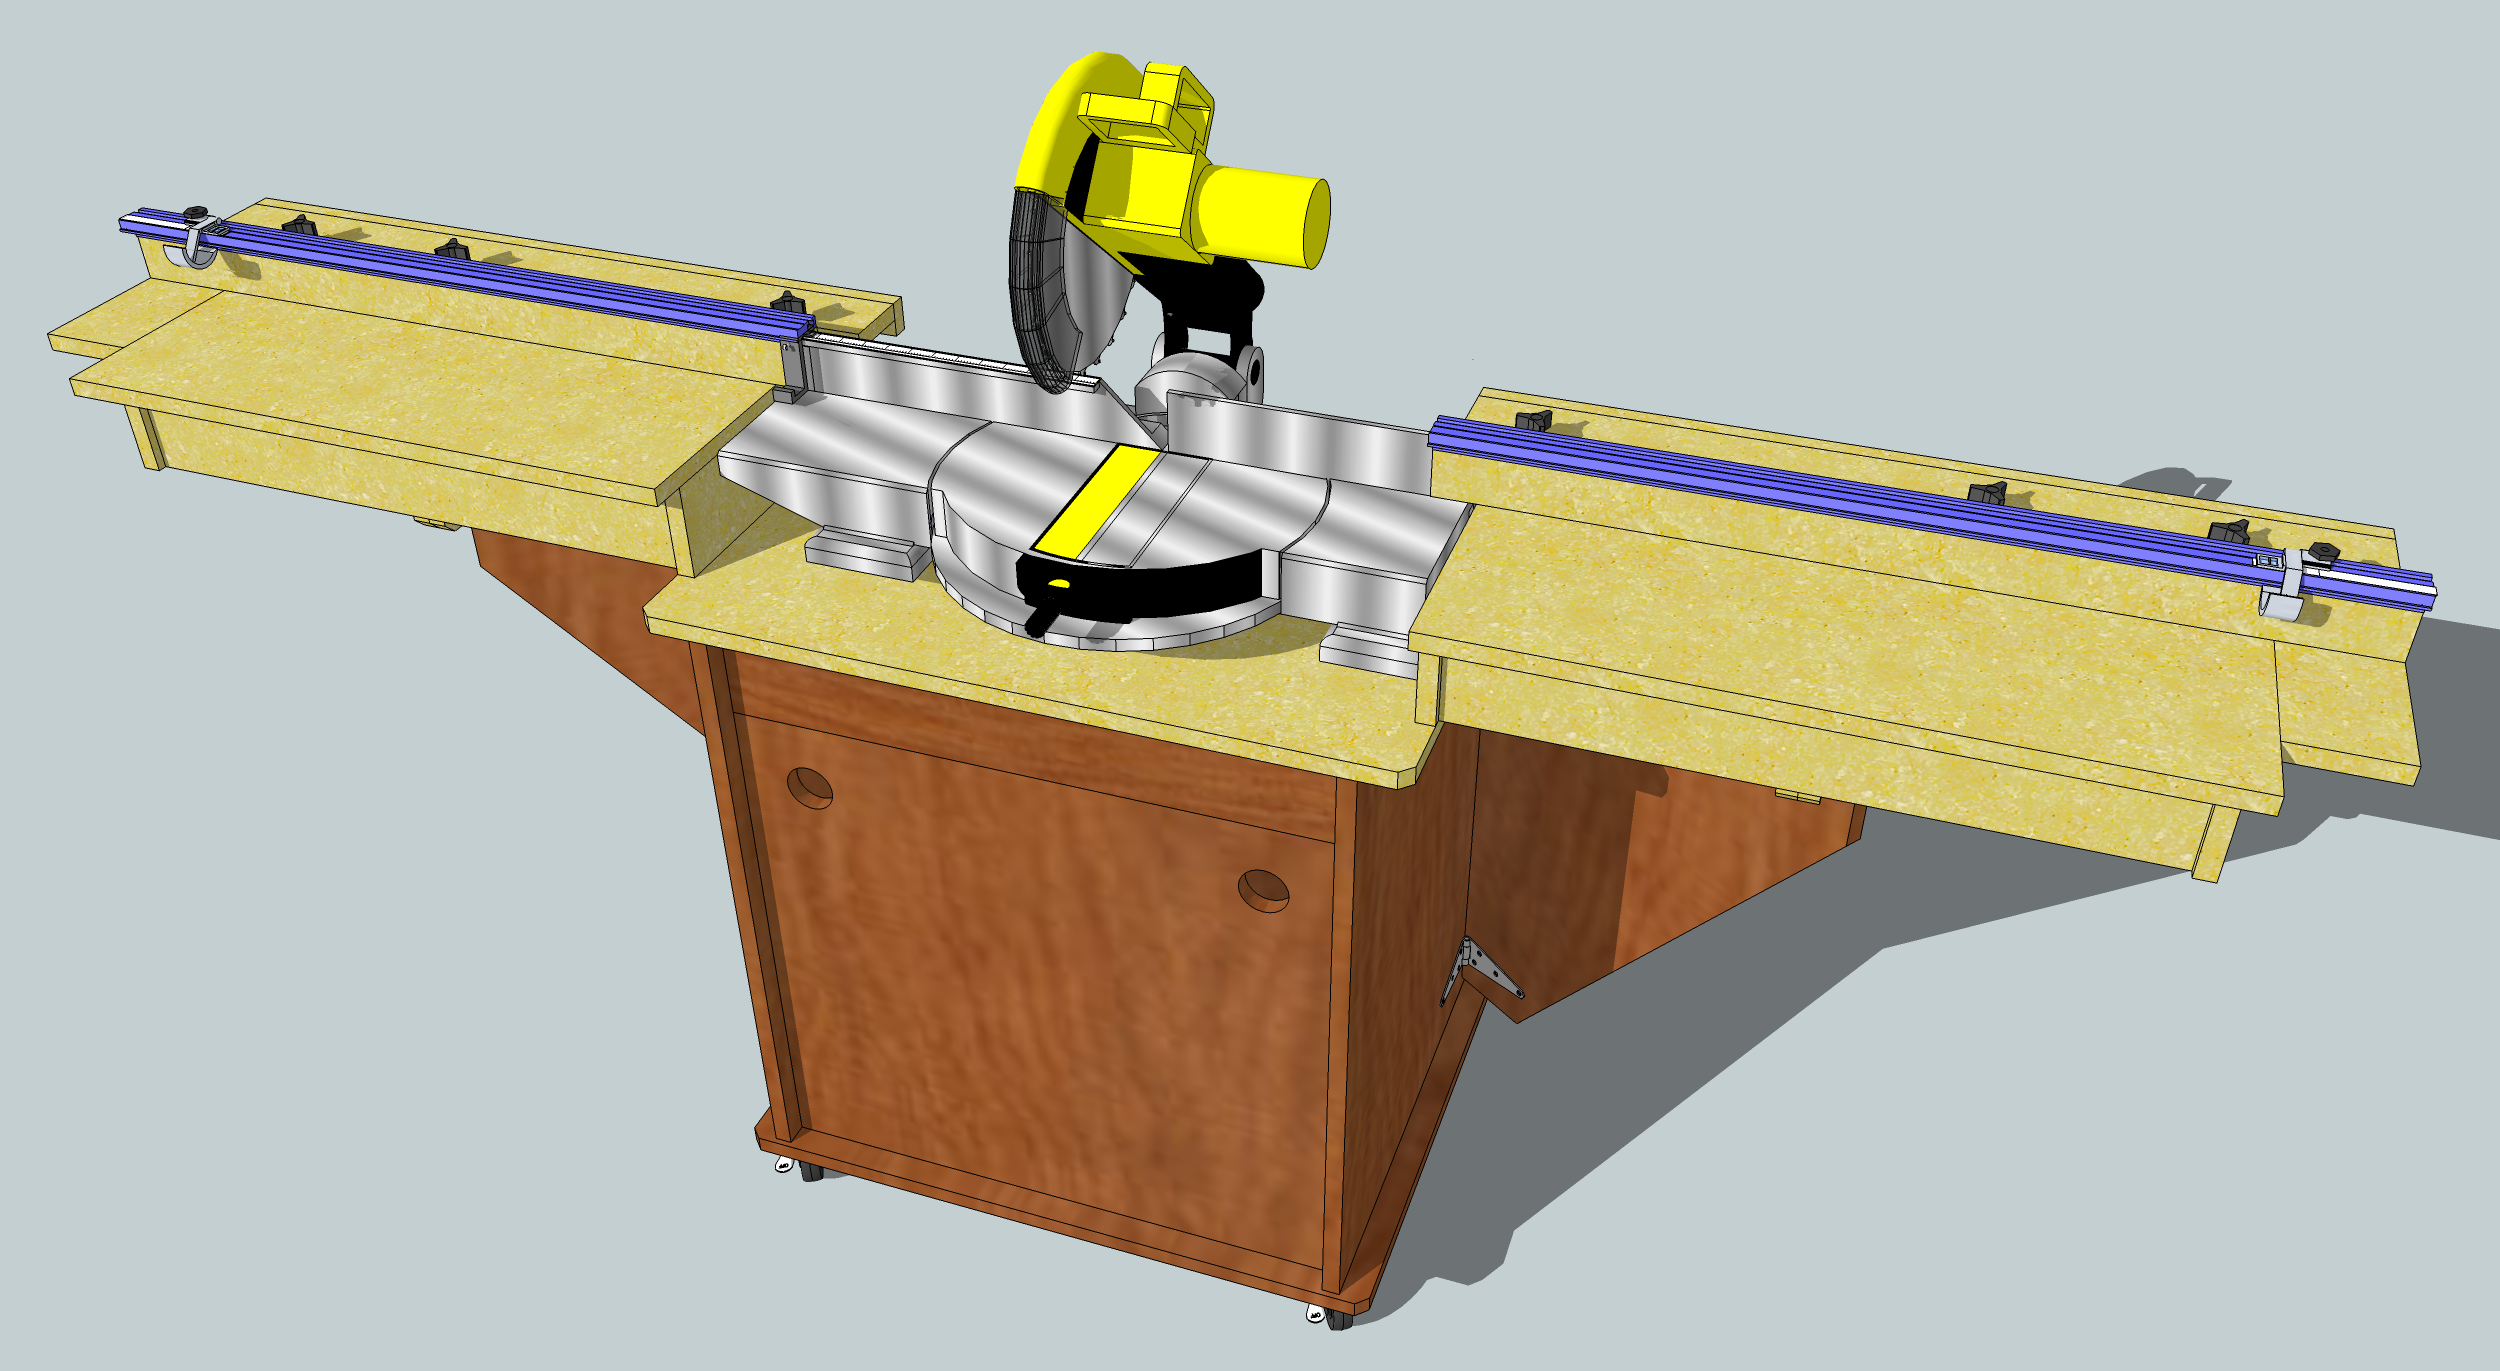 Build Woodworking Plans Miter Saw Stand Diy Plans For Wood Heated Hot Tub Observant47nbk